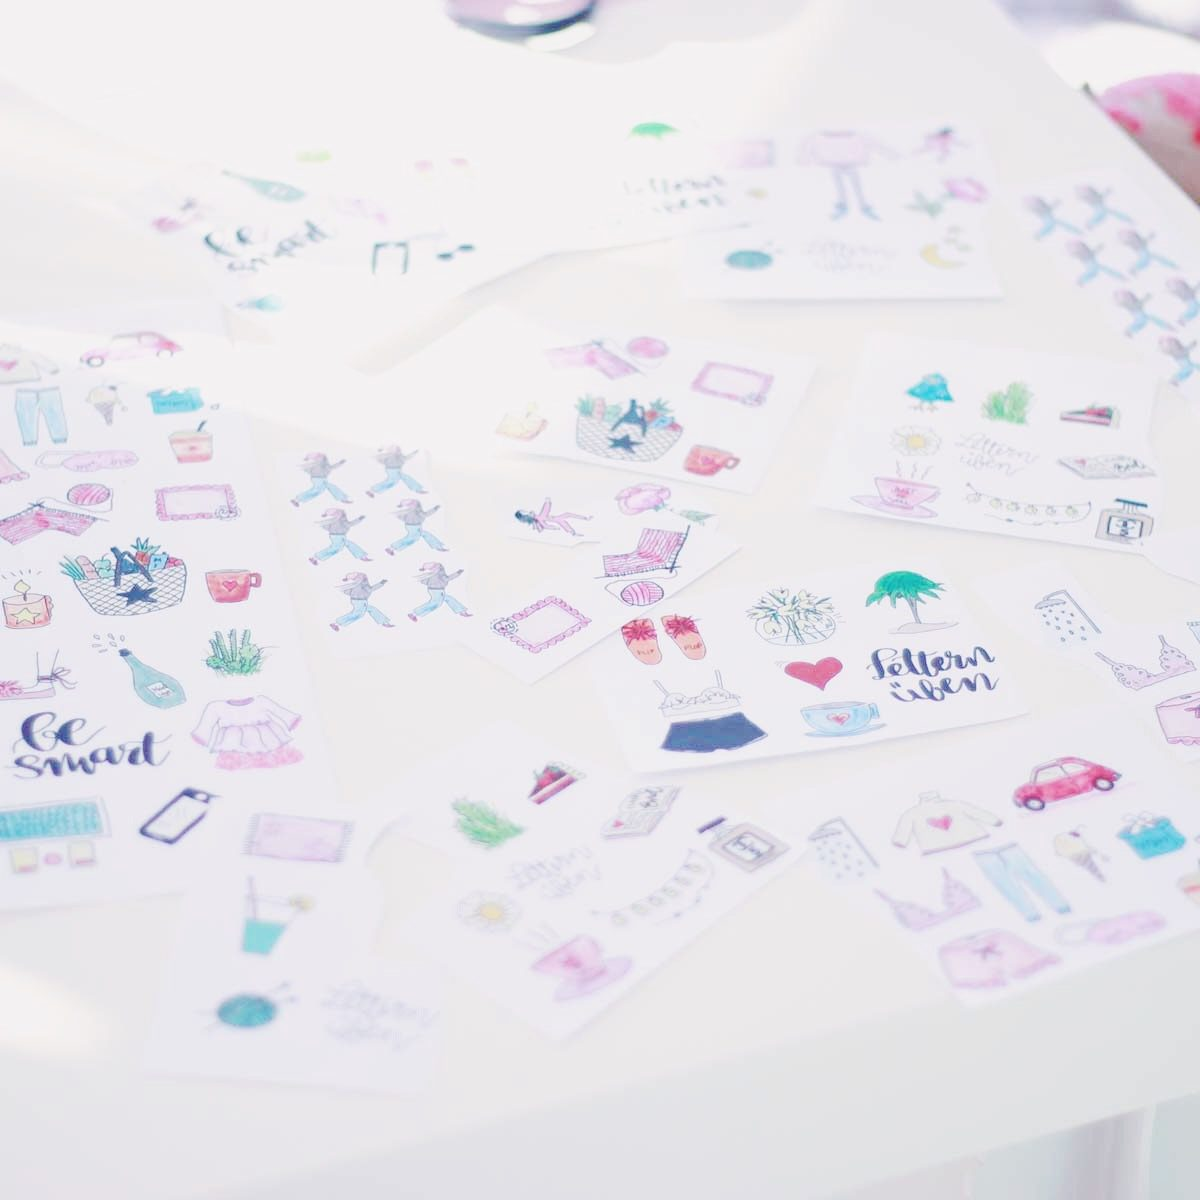 doodles sticker planning elfenklang